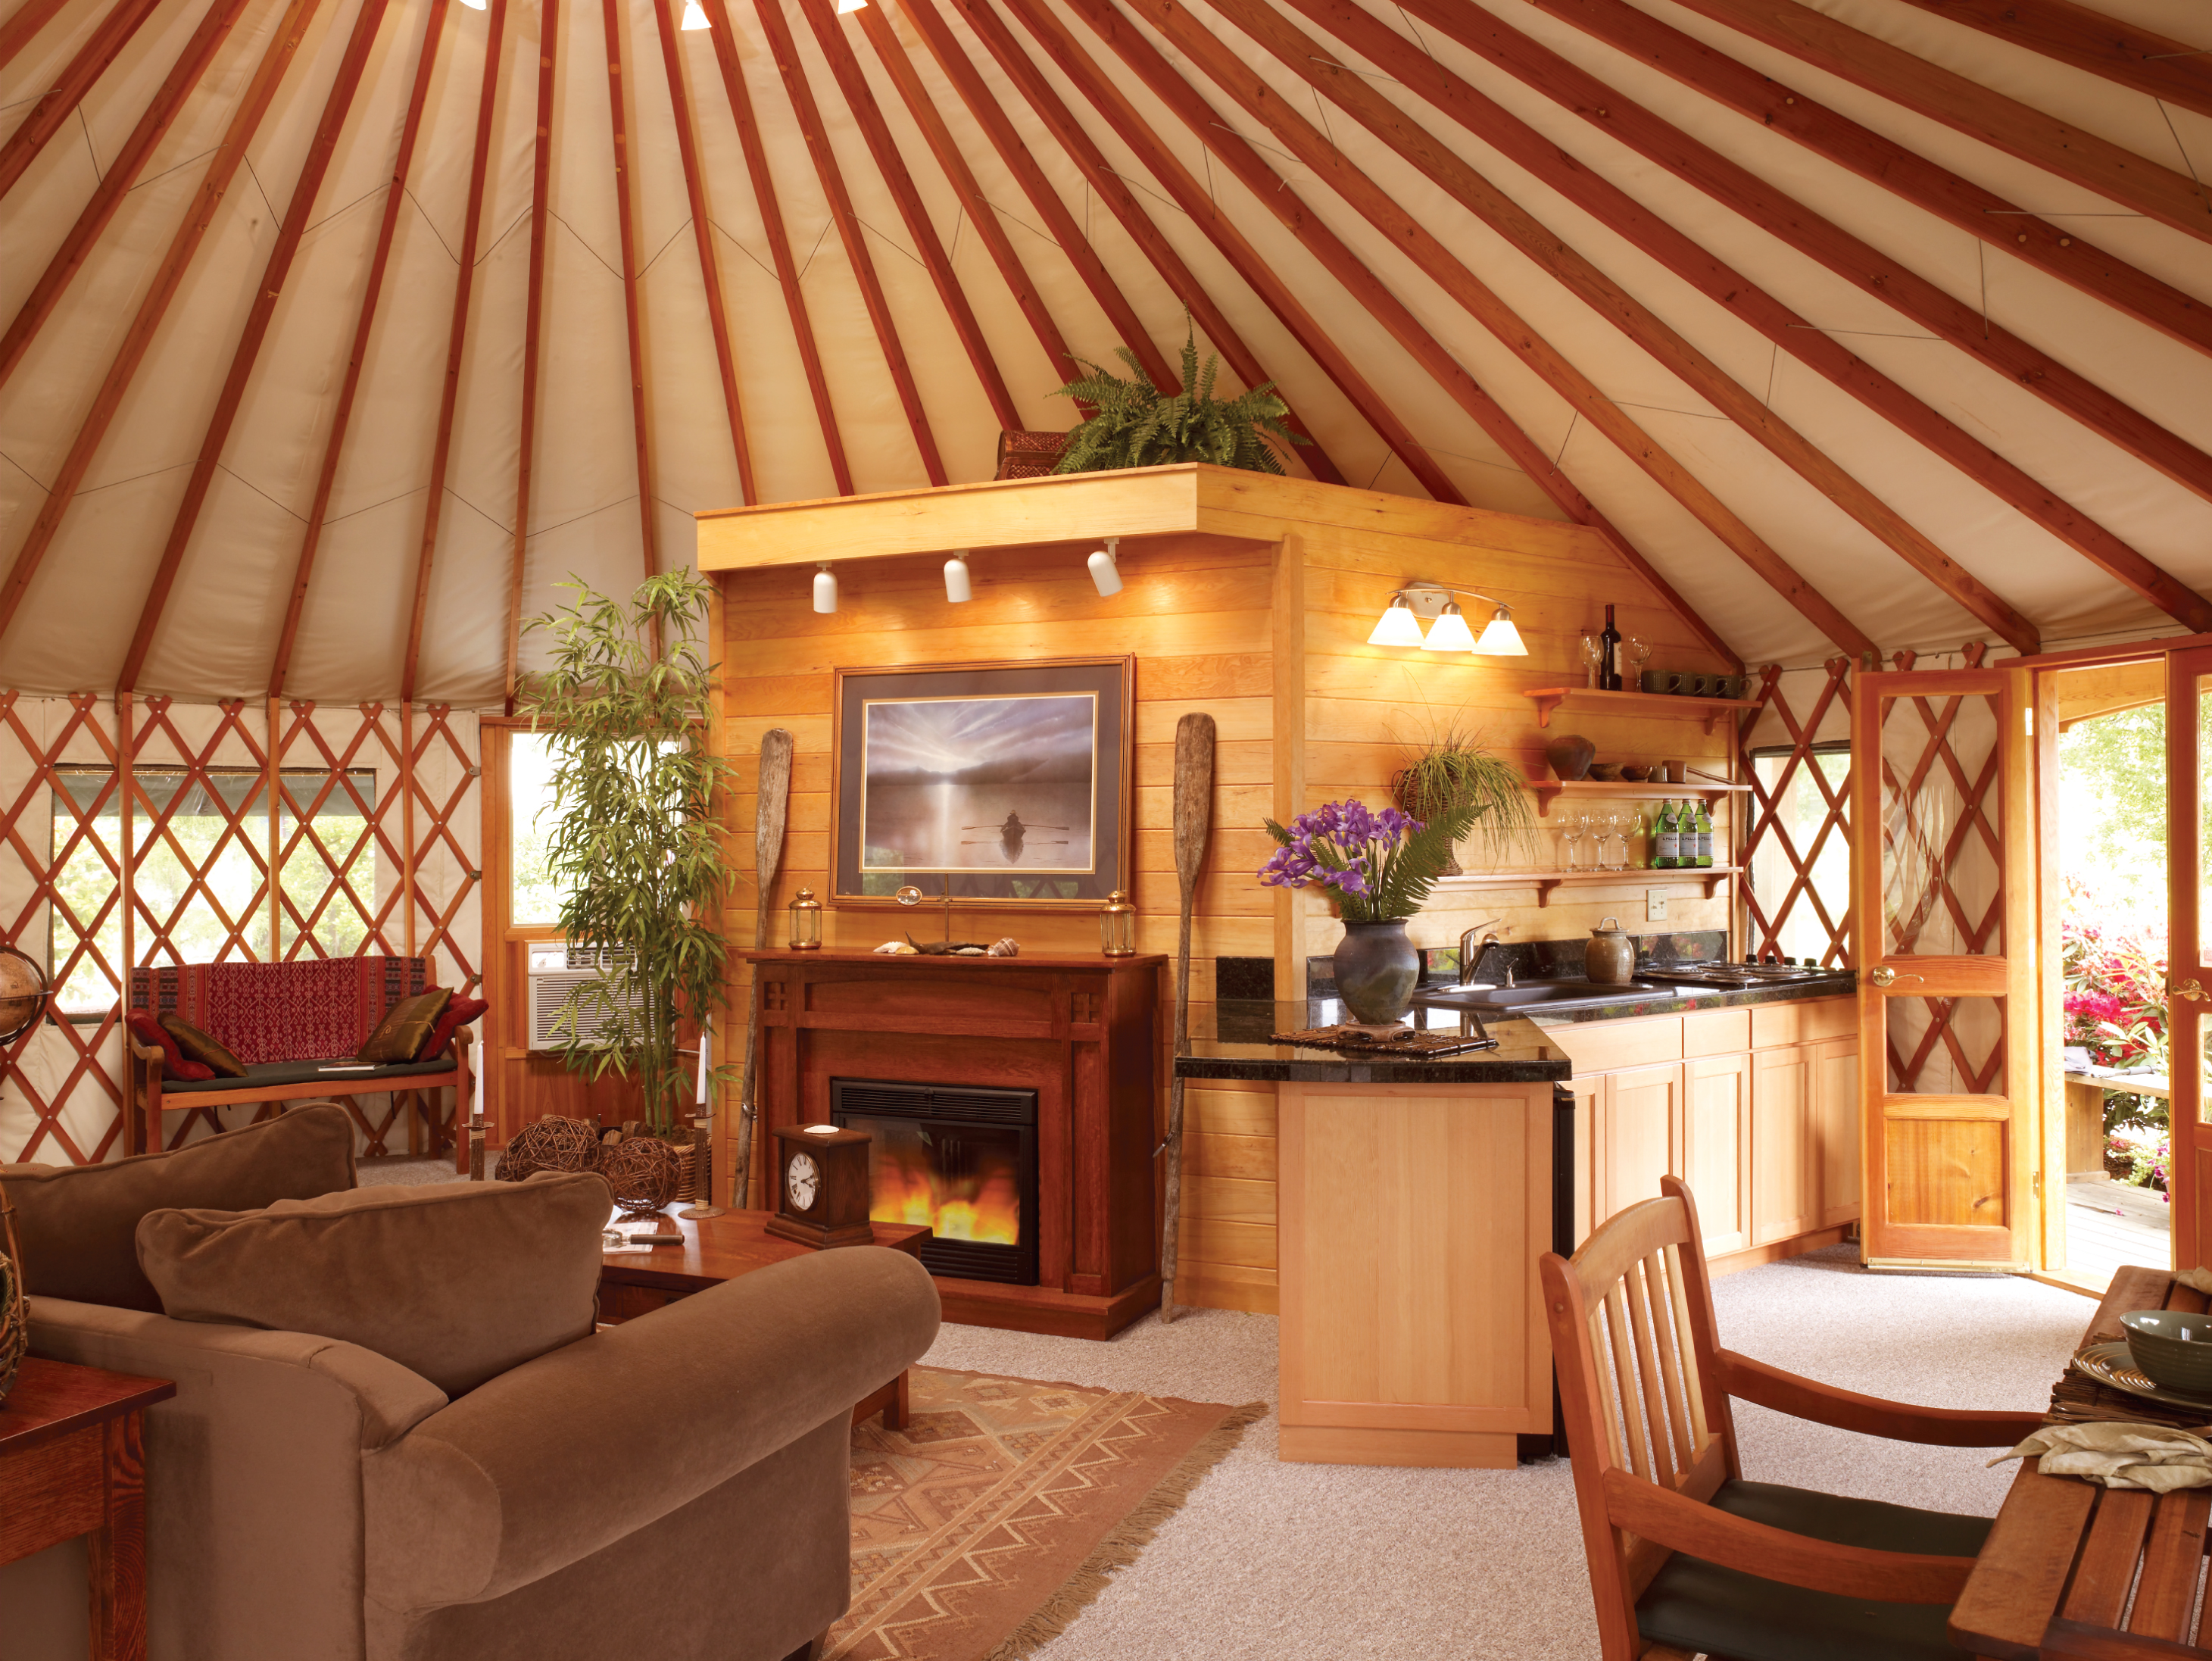 Oregon company will build you a beautiful yurt for less for Salle de bain yourte